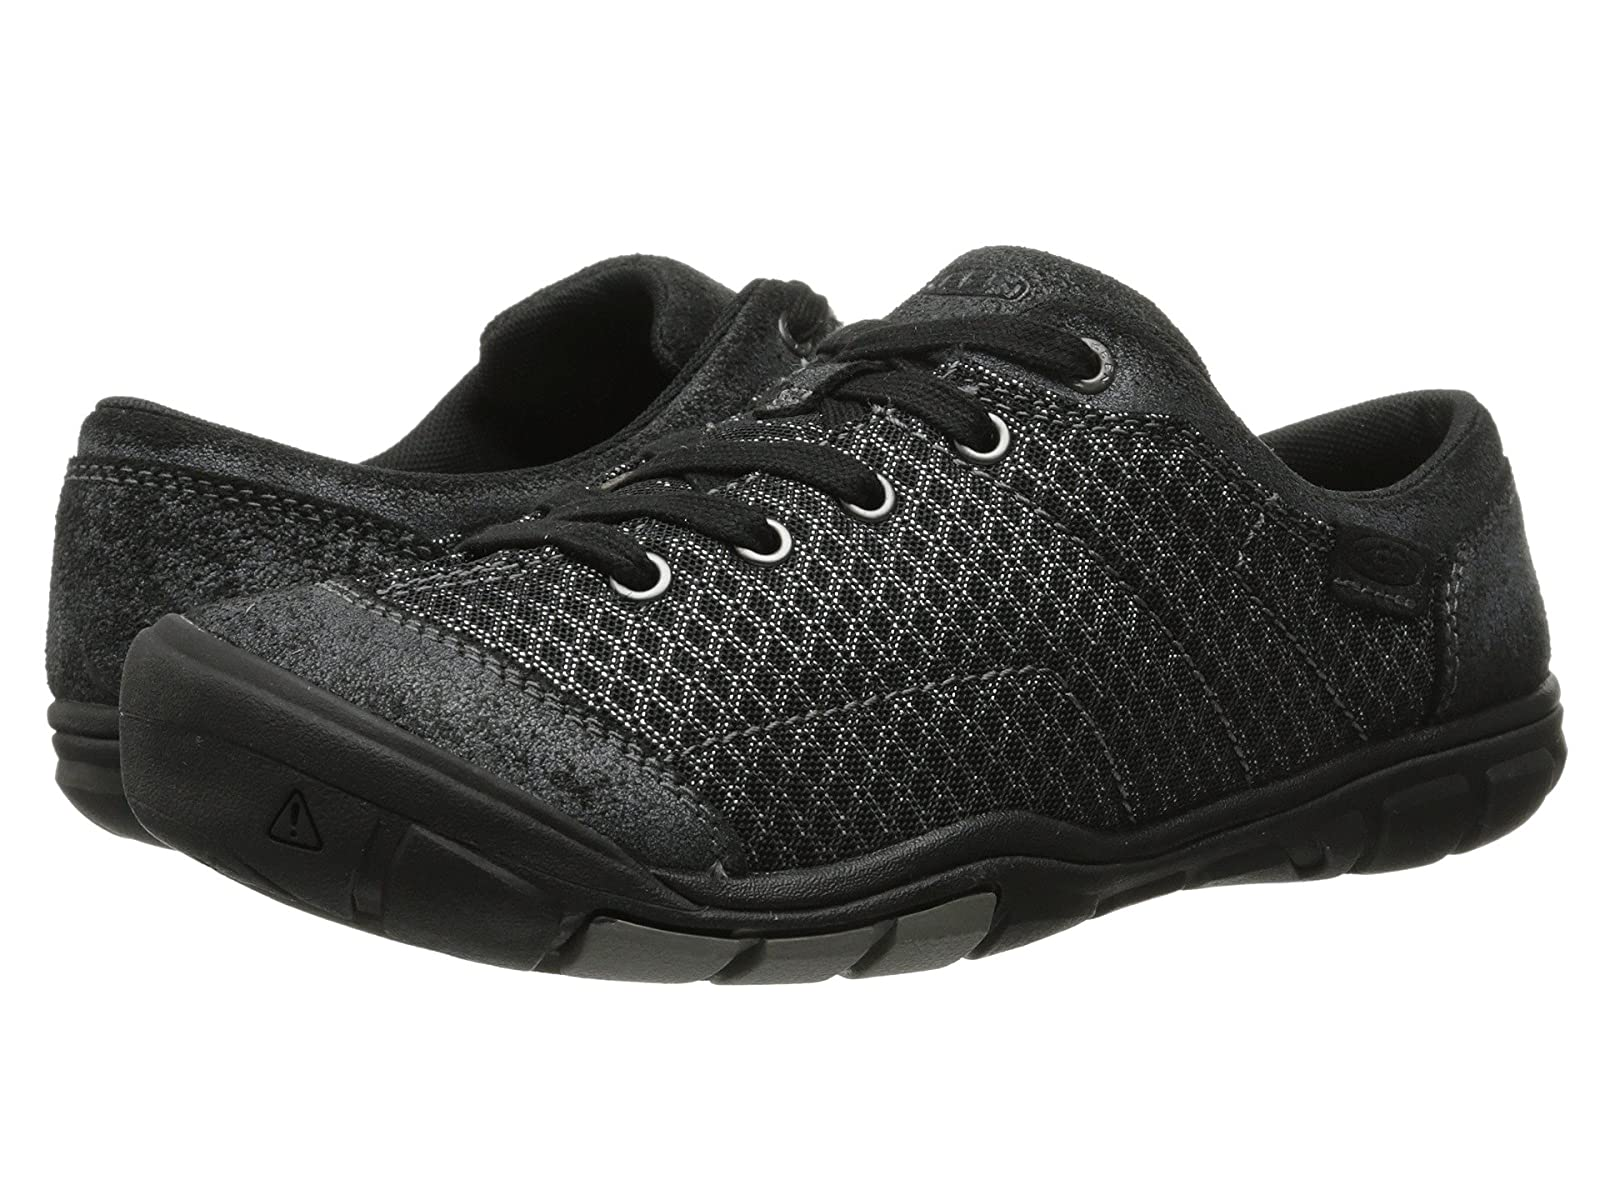 Keen Mercer Lace II CNXAtmospheric grades have affordable shoes